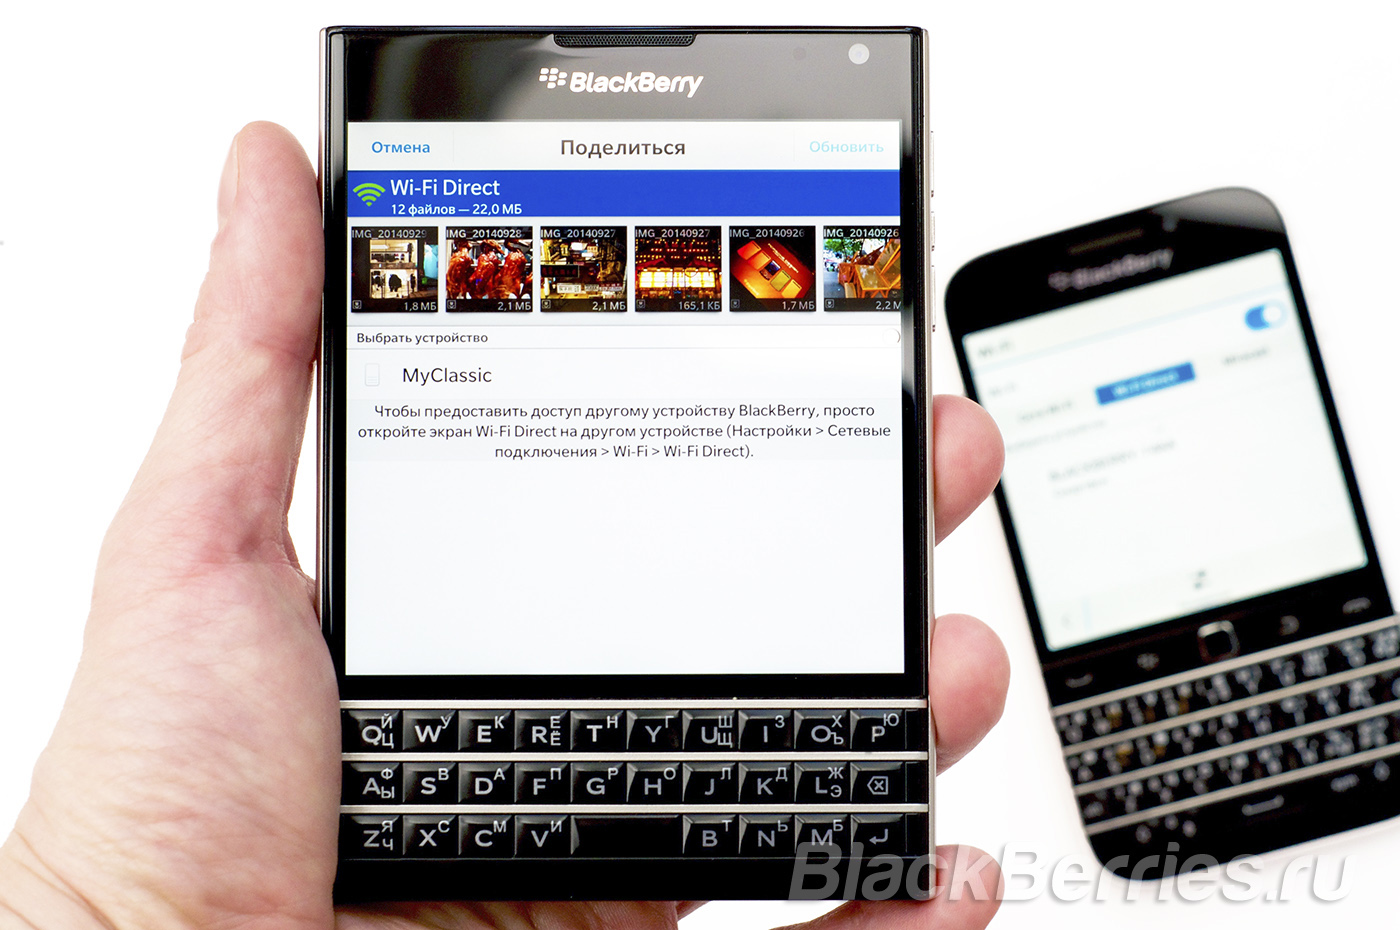 BlackBerry-Passport-FAQ-1